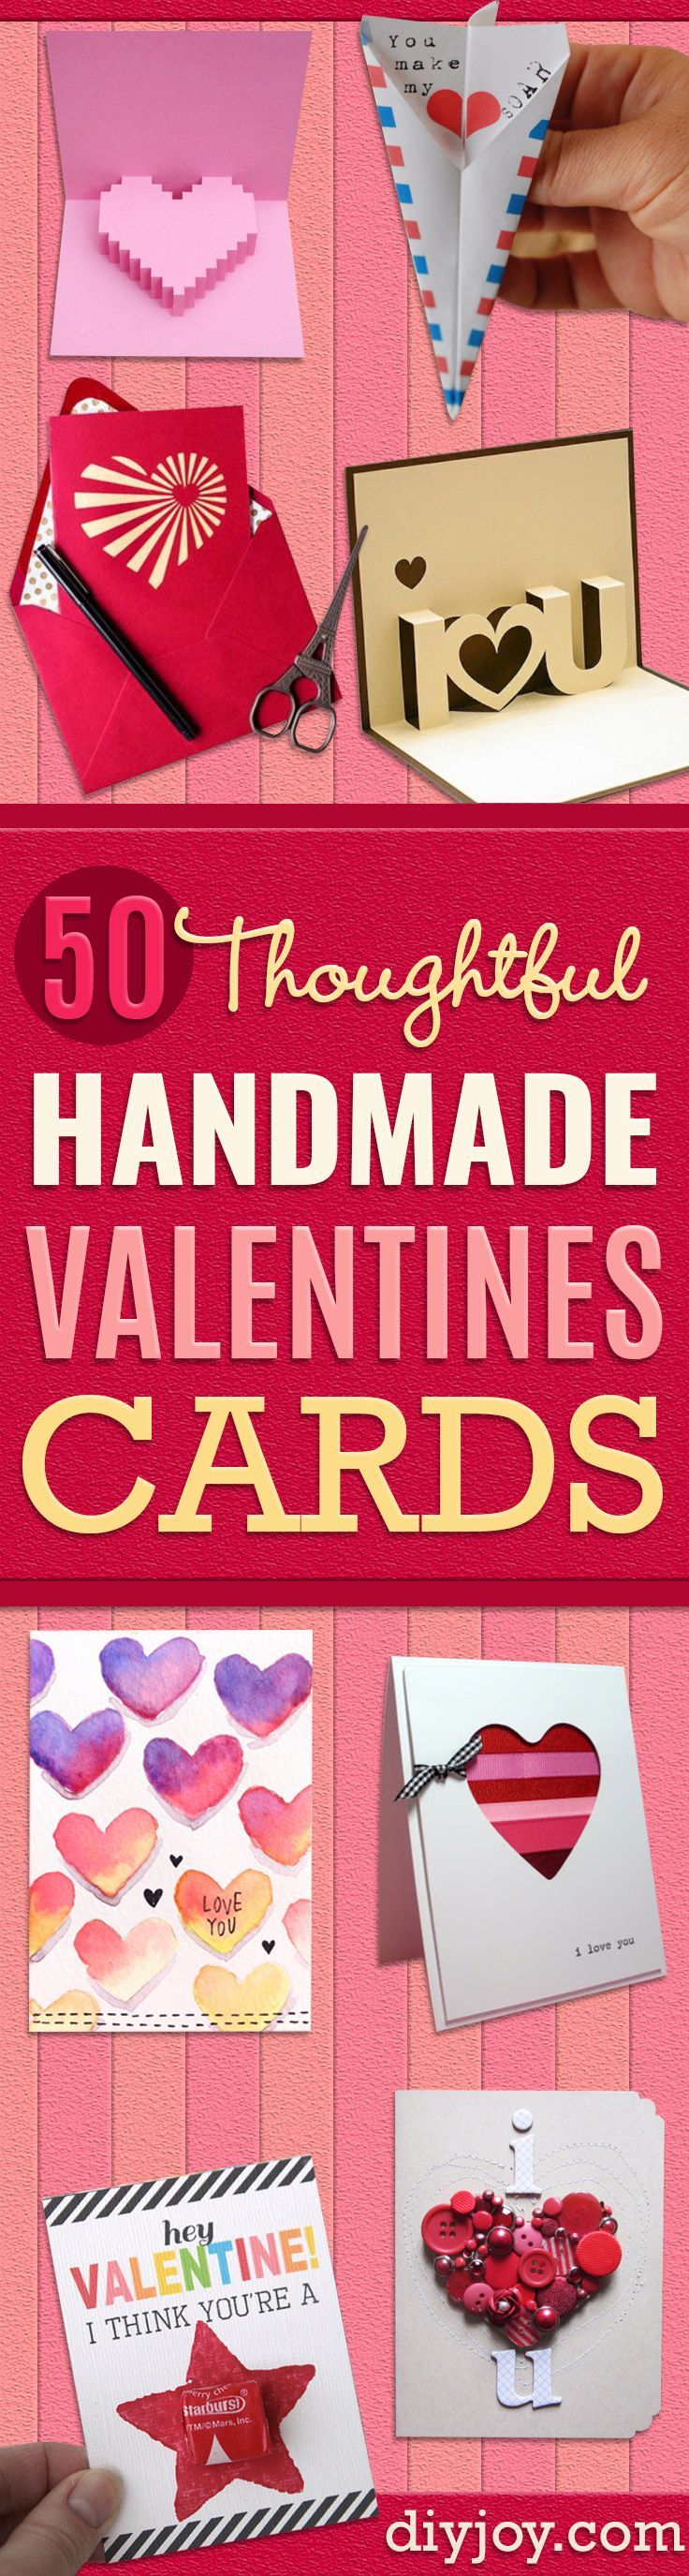 DIY Valentines Day Cards - Easy Handmade Cards for Him and Her, Kids, Freinds and Teens - Funny, Romantic, Printable Ideas for Making A Unique Homemade Valentine Card - Step by Step Tutorials and Instructions for Making Cute Valentine's Day Gifts http://diyjoy.com/diy-valentines-day-cards